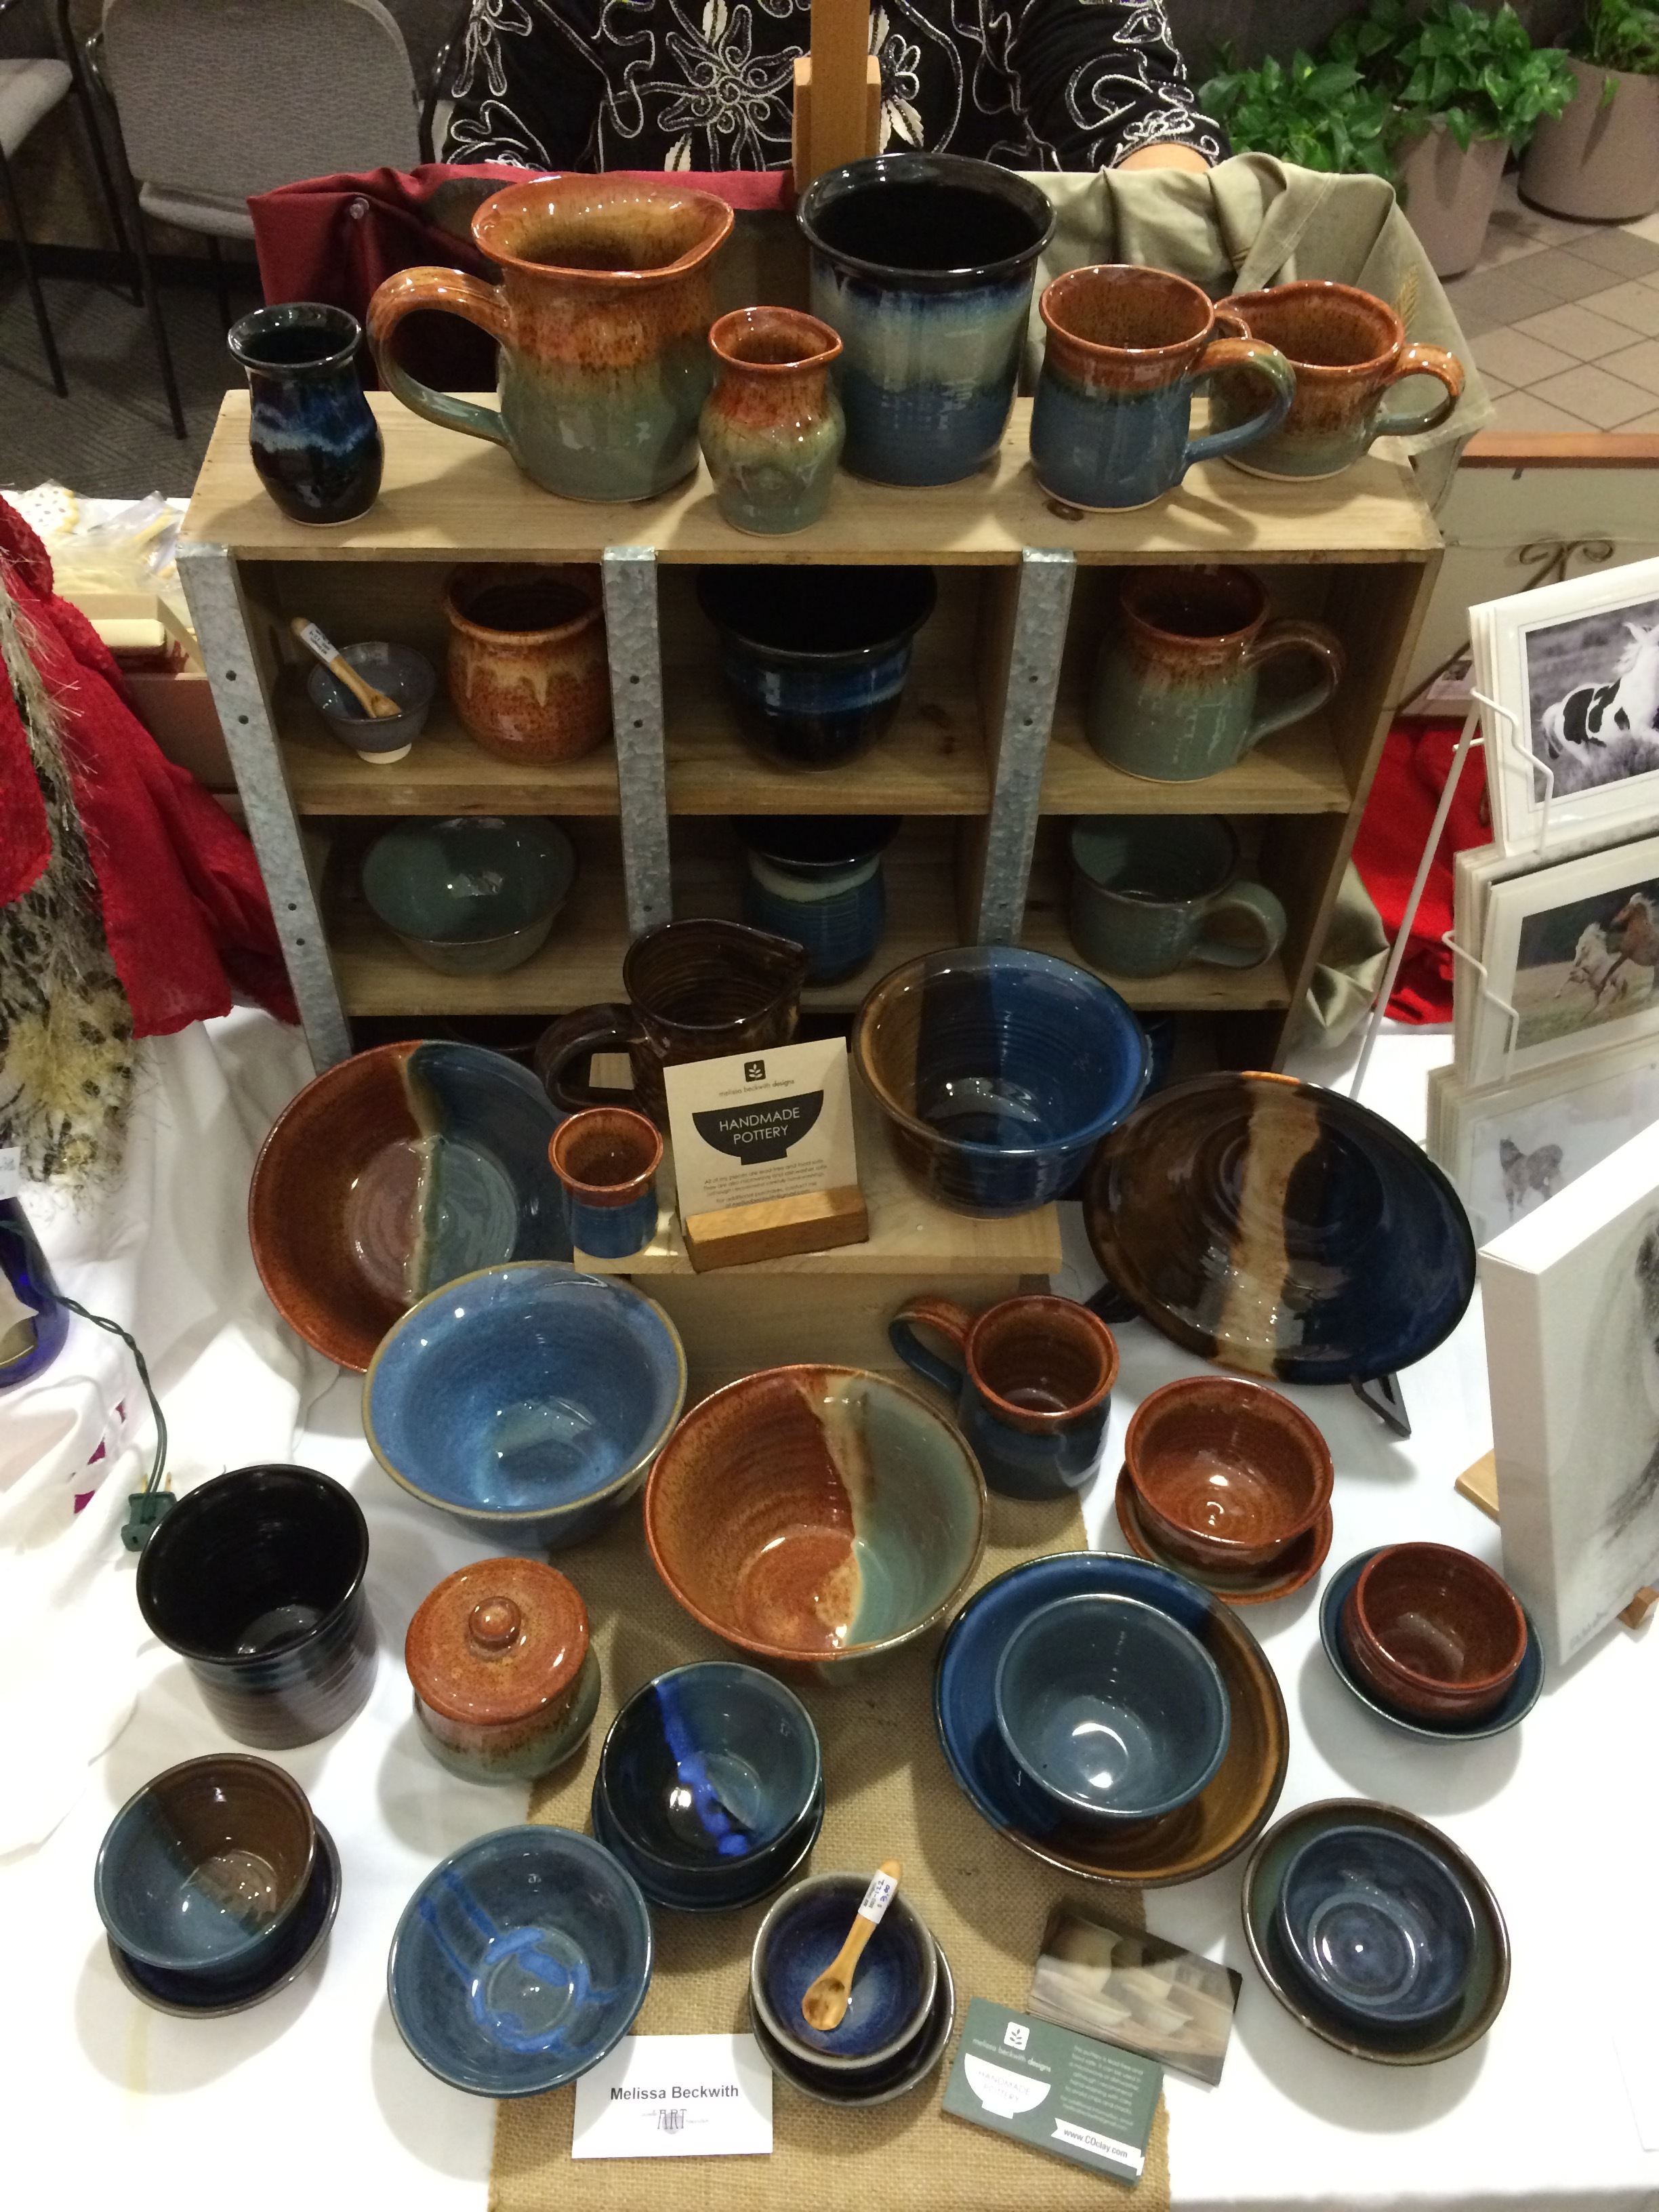 Pottery by Melissa Beckwith